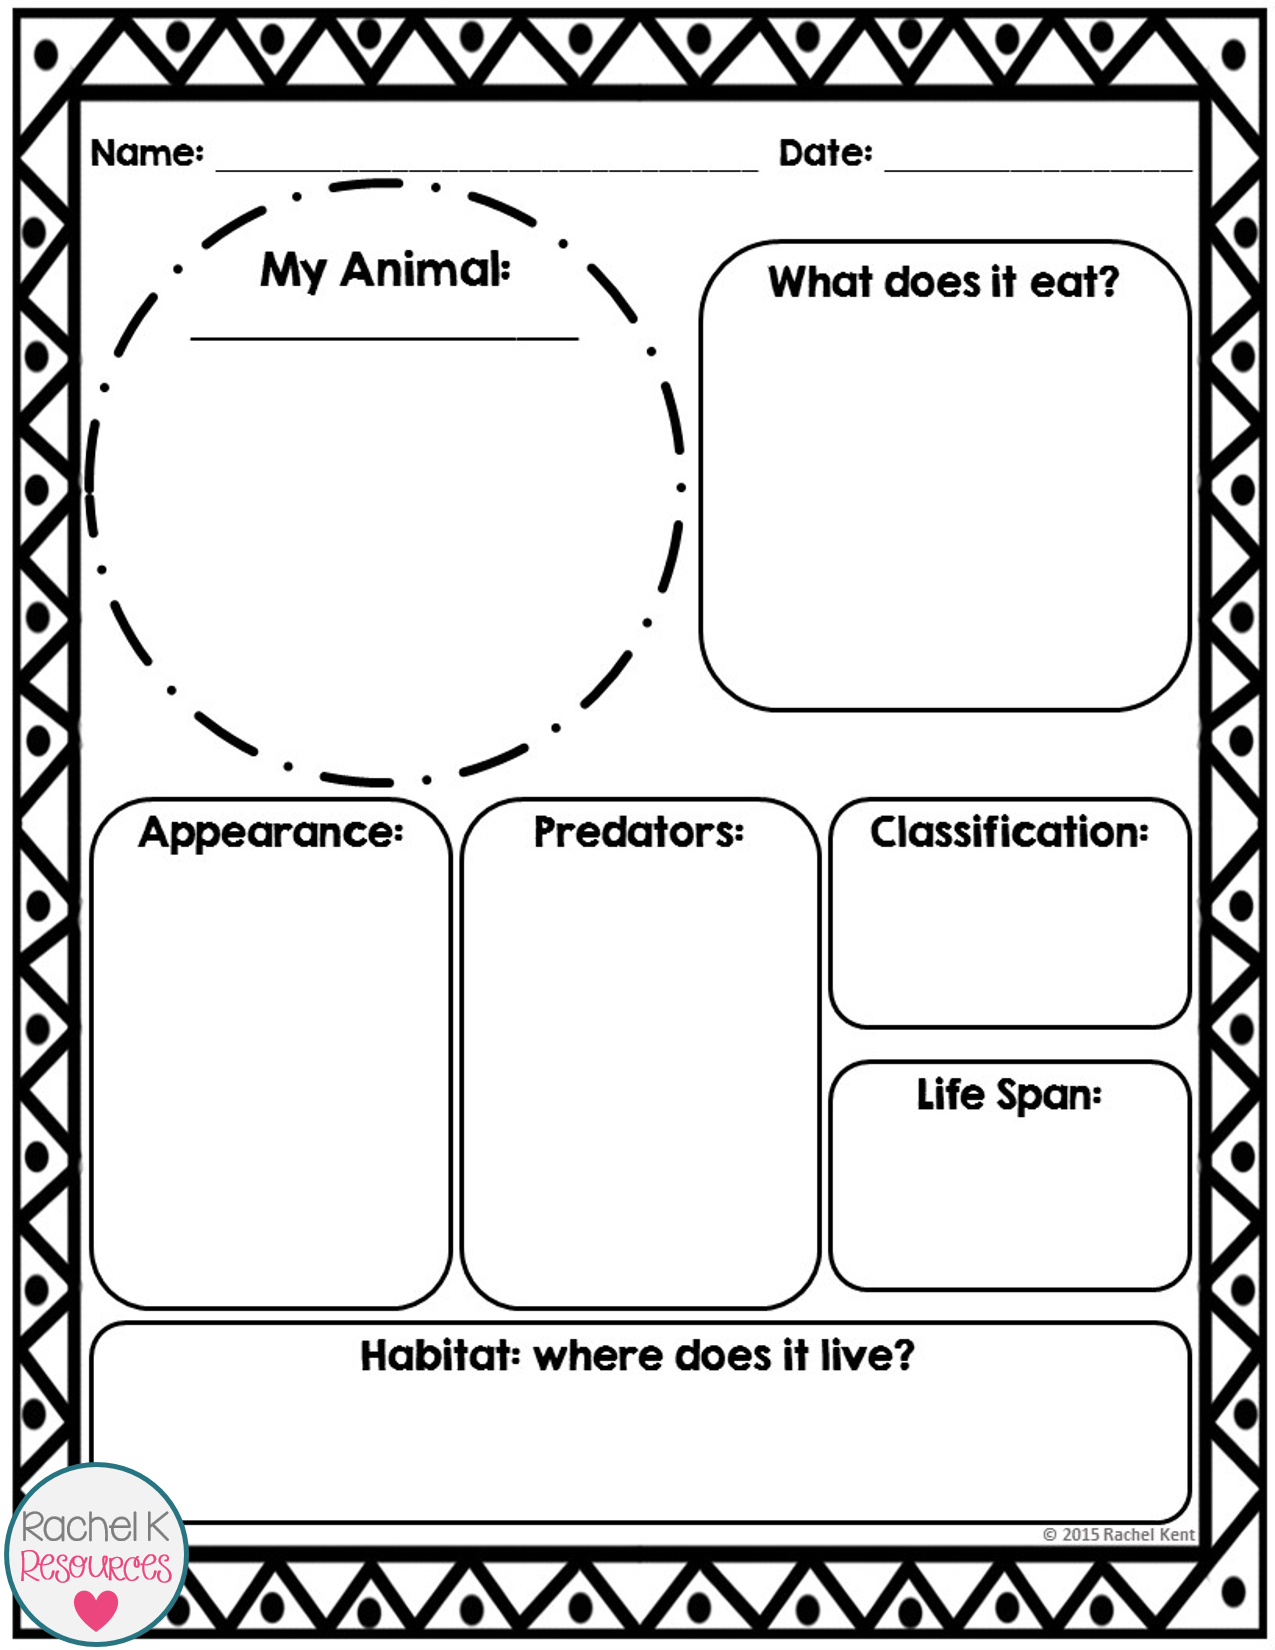 Animal Report Template | Science | Report Template Within Template For Information Report